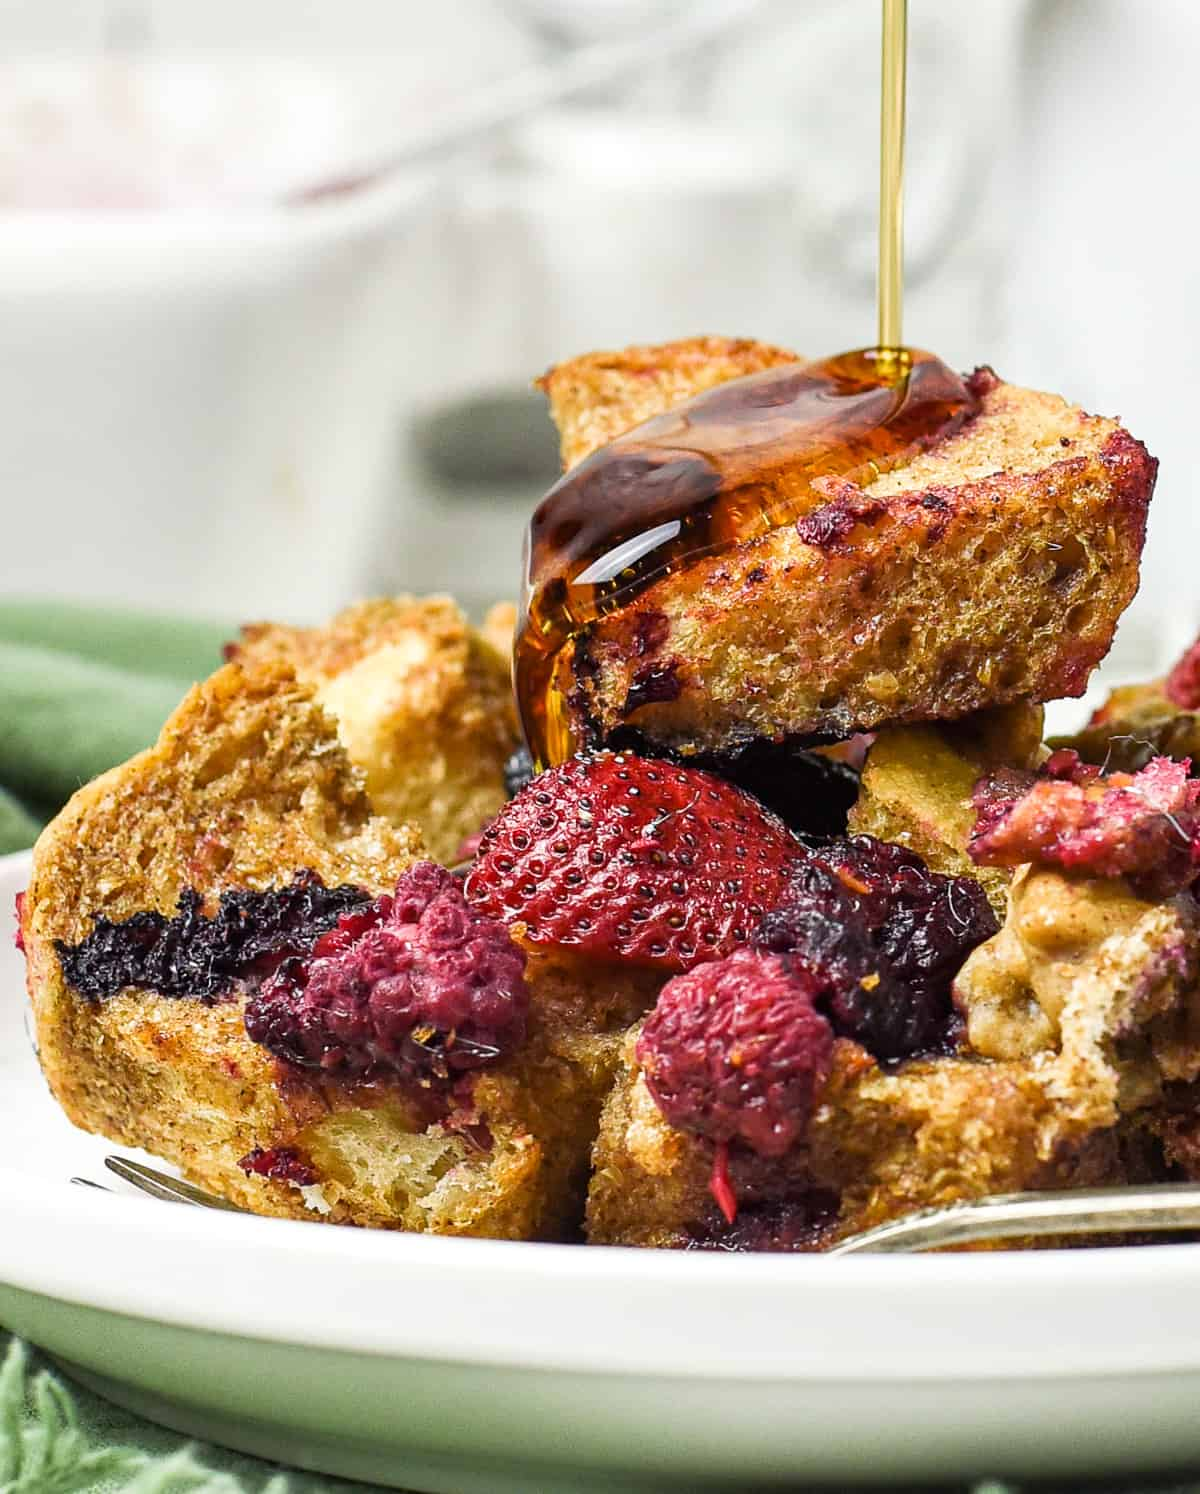 Syrup on top of french toast casserole.